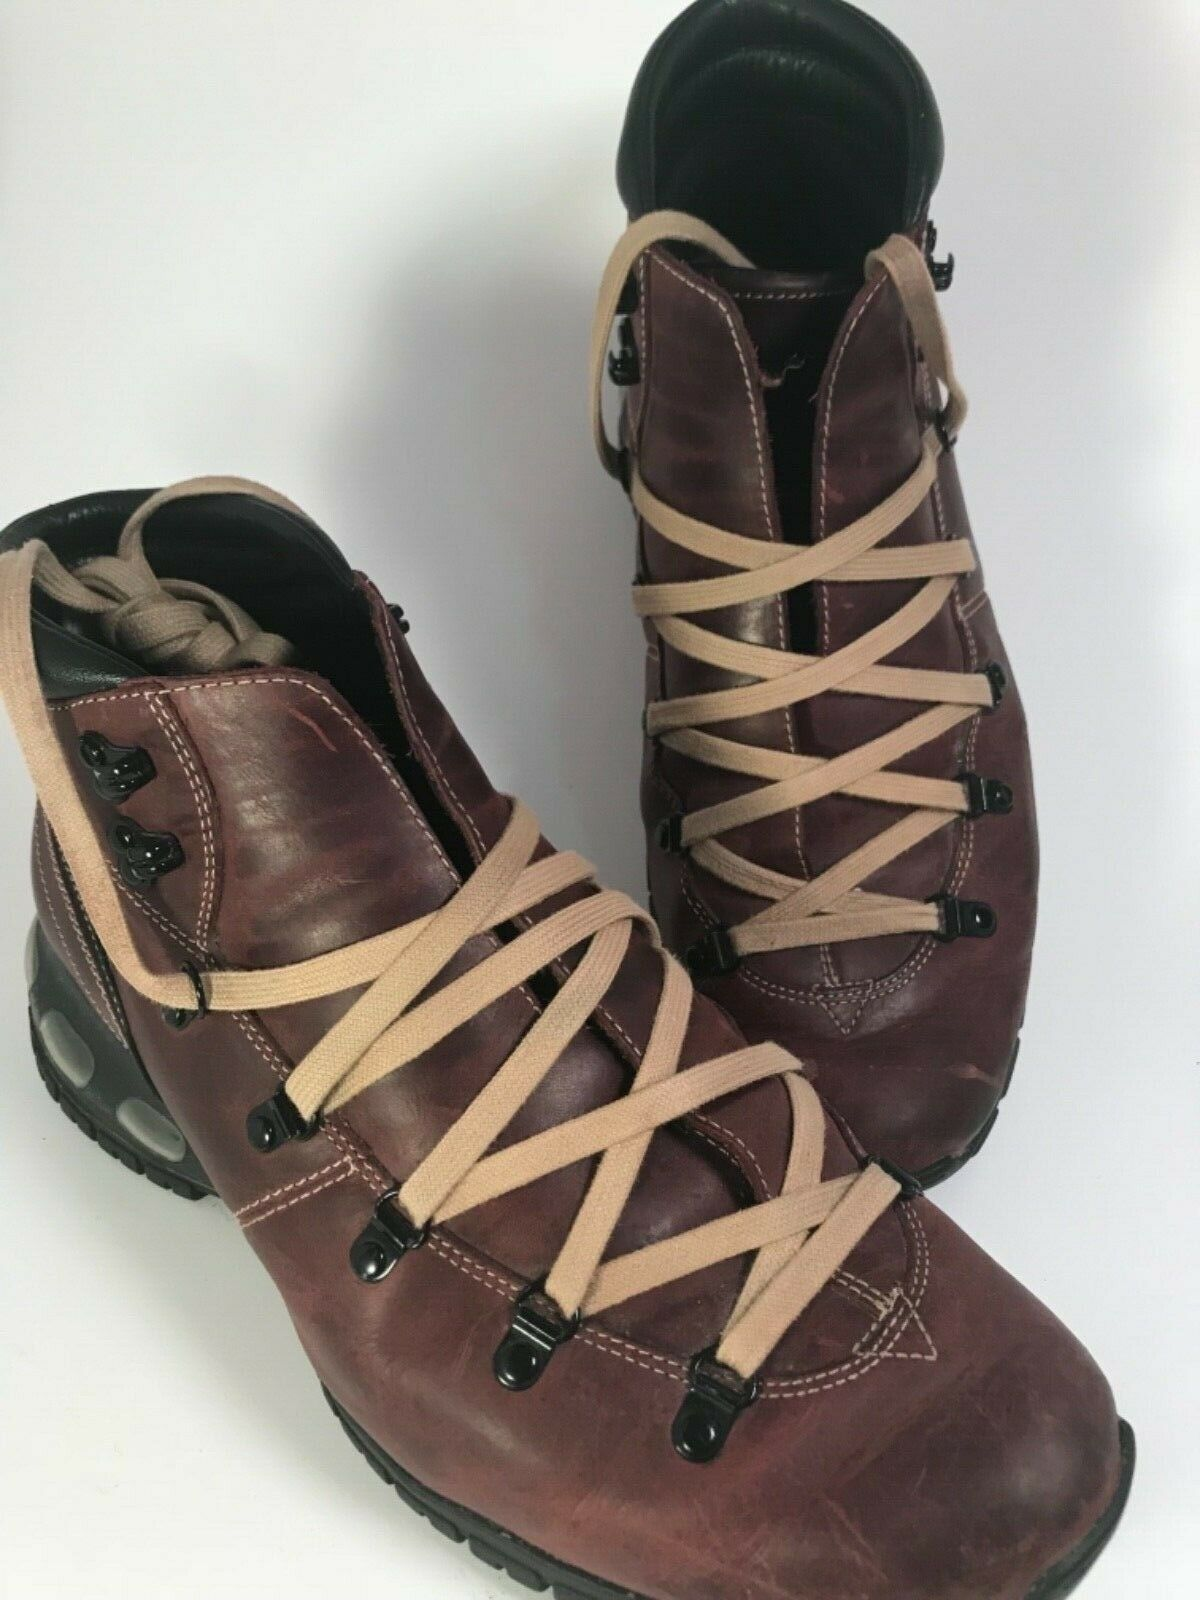 save off 56d85 ded55 Cole Haan Air Andes Alpine Men s Hiker Boots Boots Boots Brown Size 10 M  6fa7a6